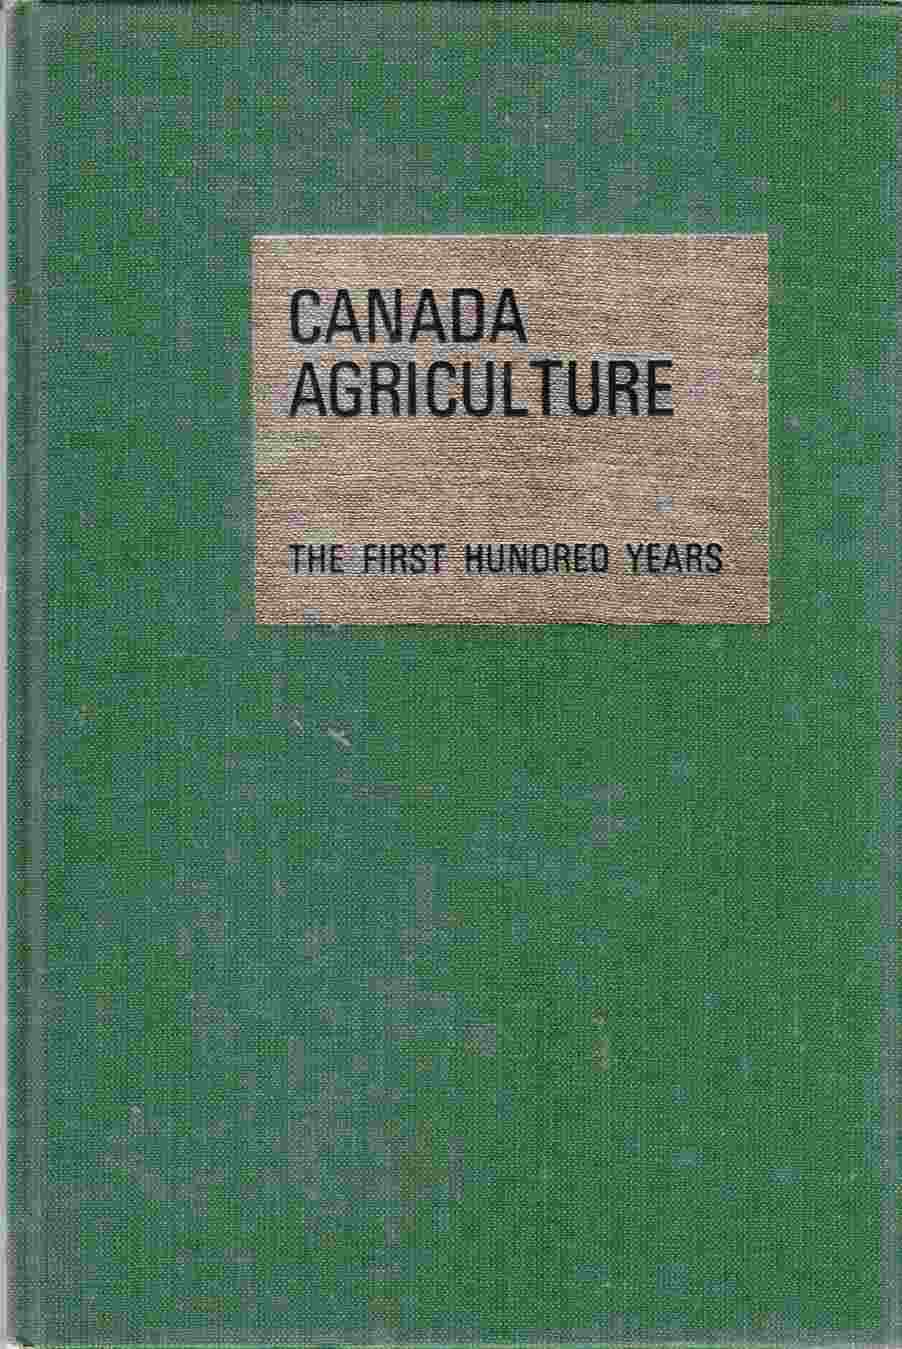 Image for Canada Agriculture: The First Hundred Years